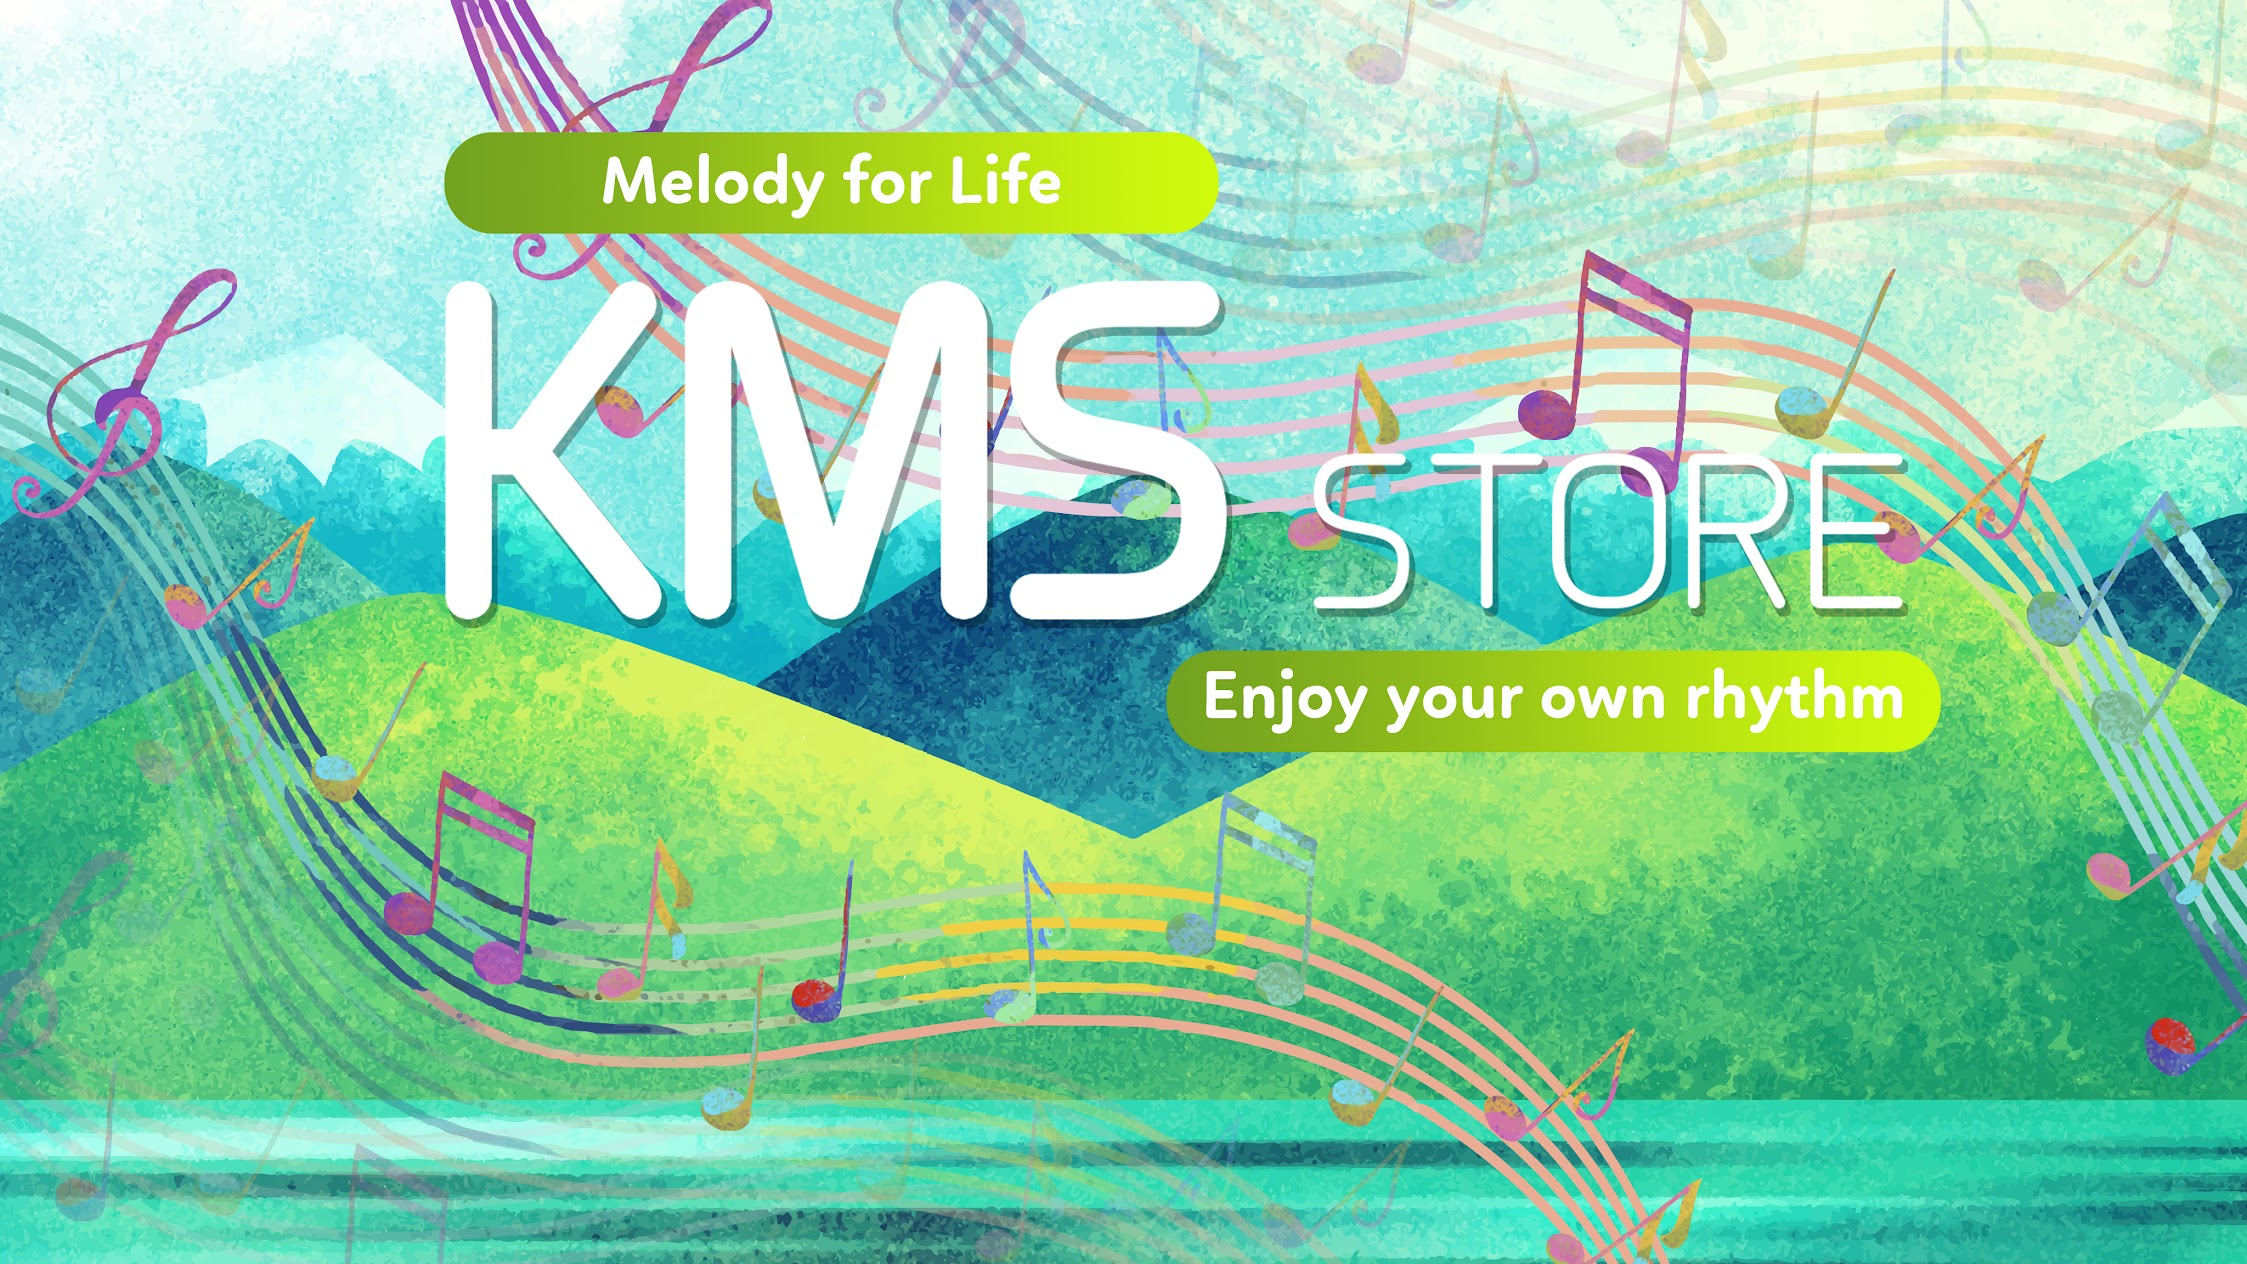 KMS STORE